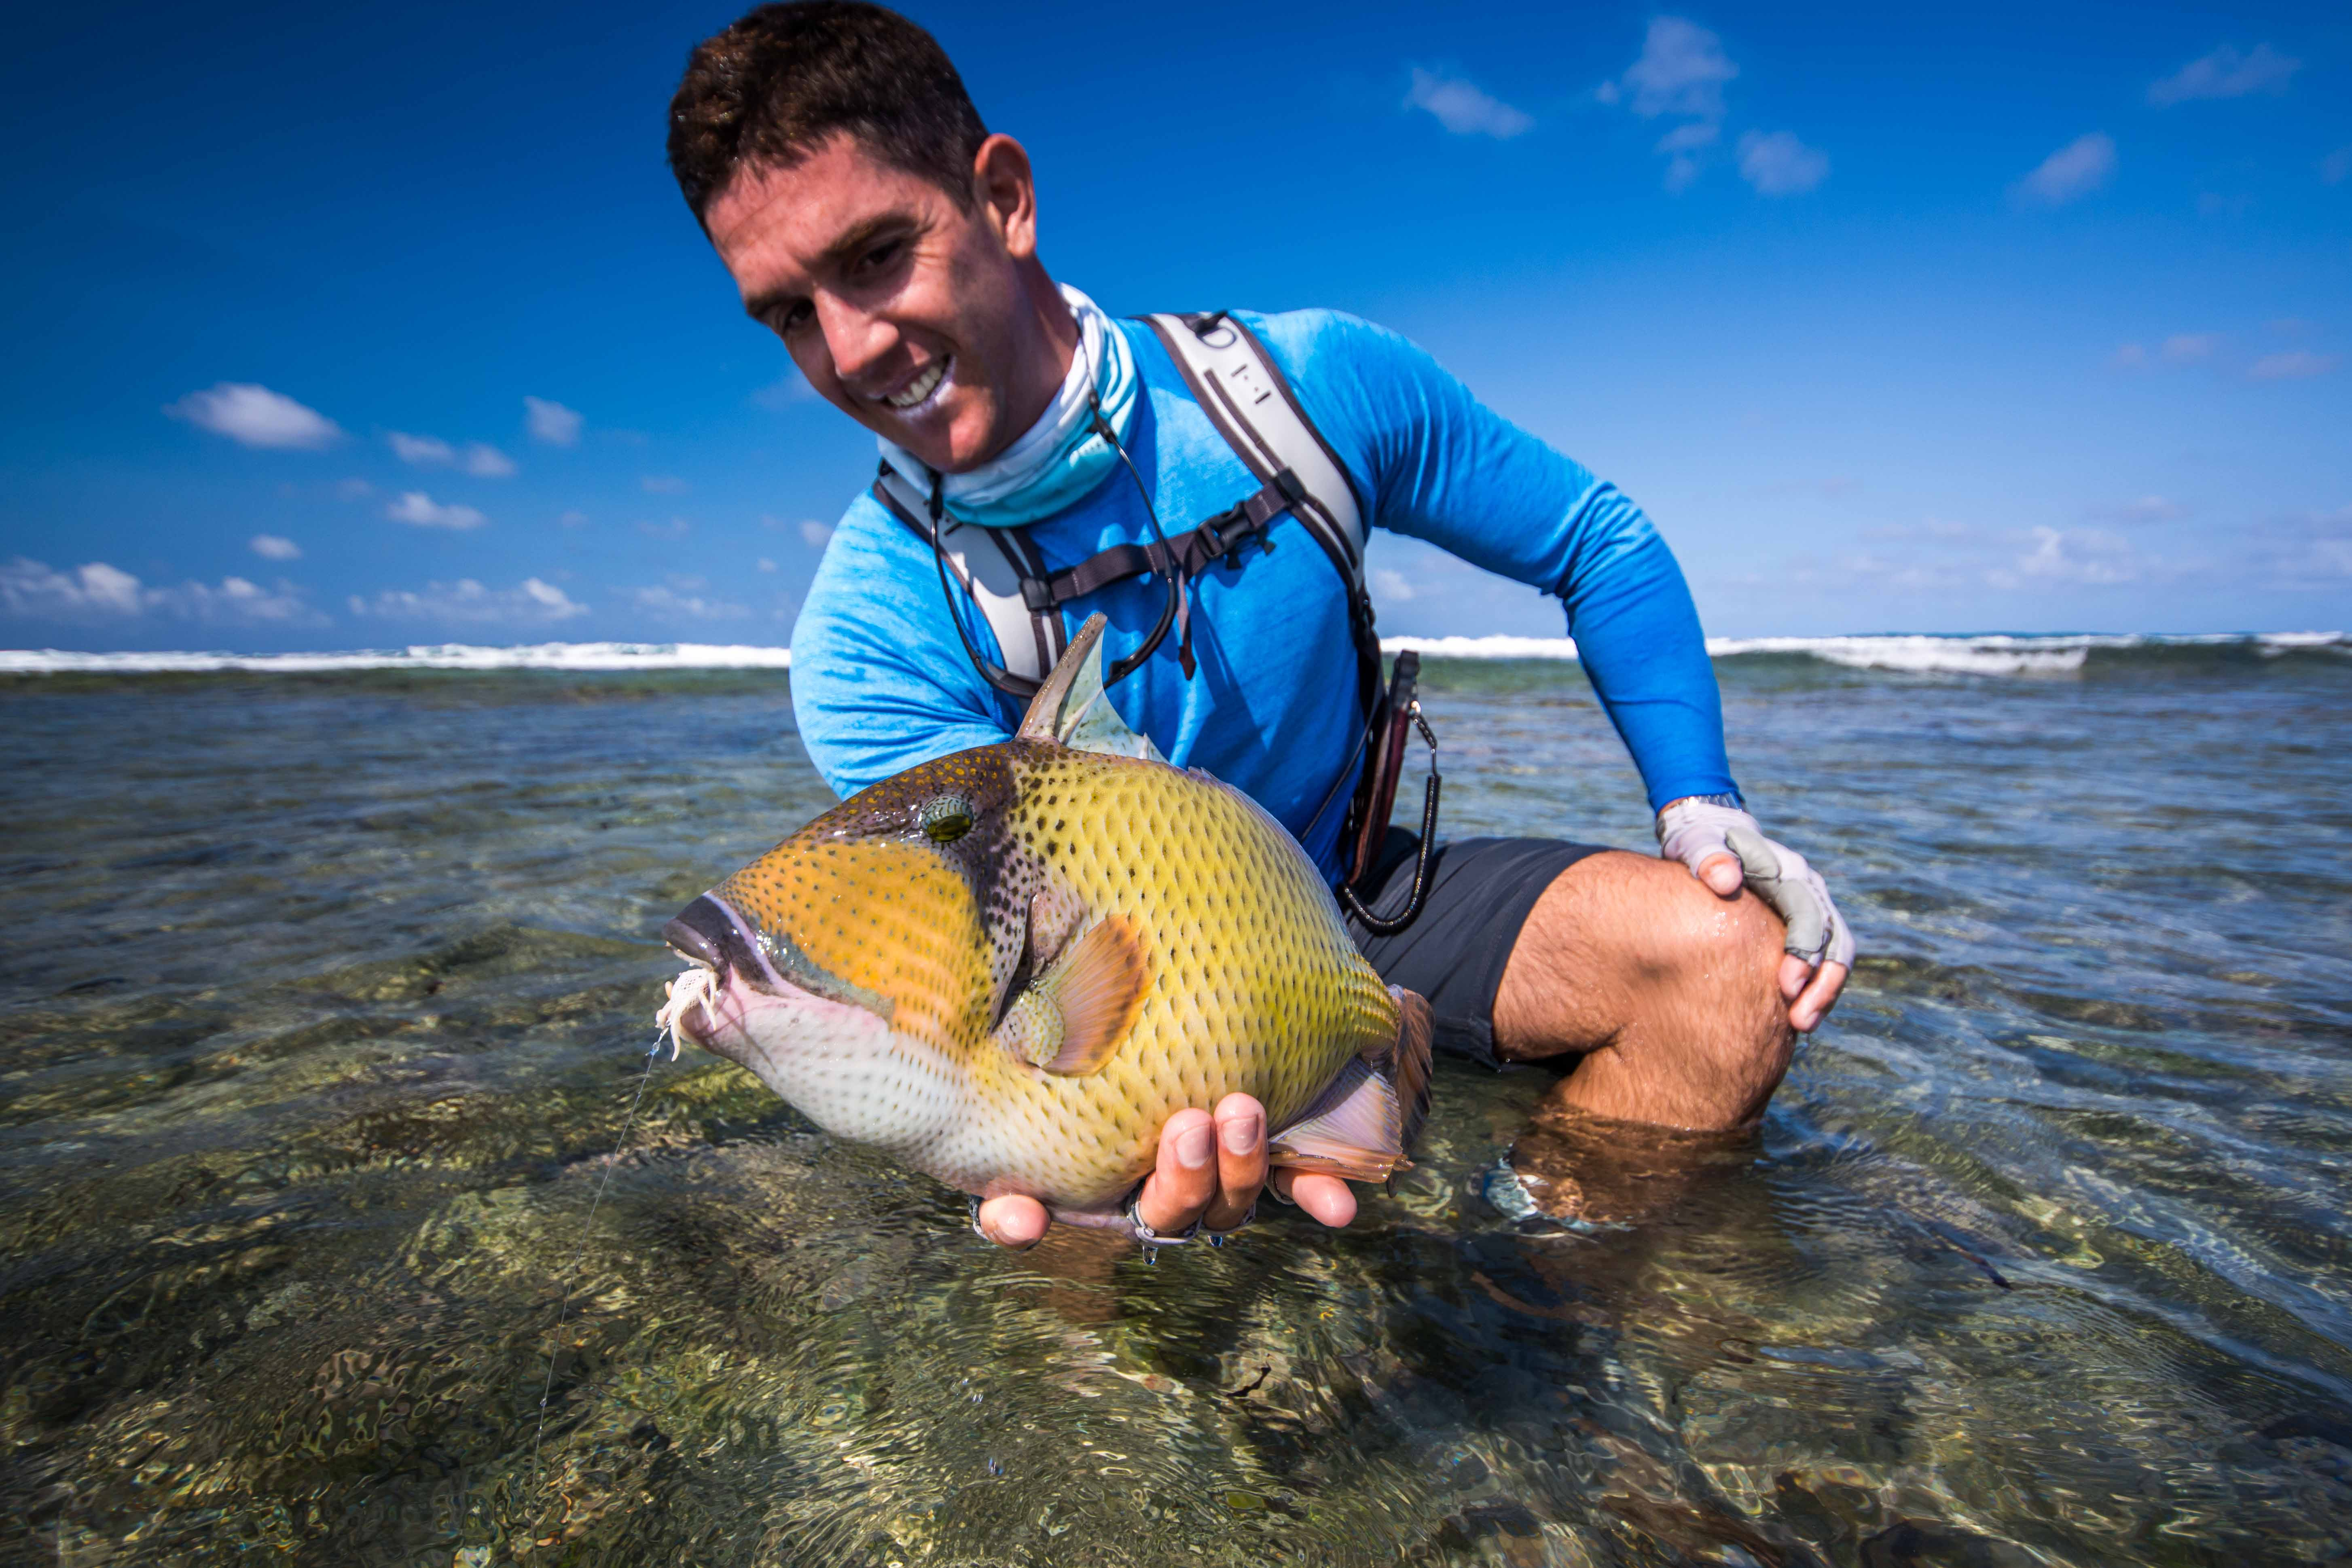 kyle-reed-mustache-trigger-fish-2-14-21-november-2016_93